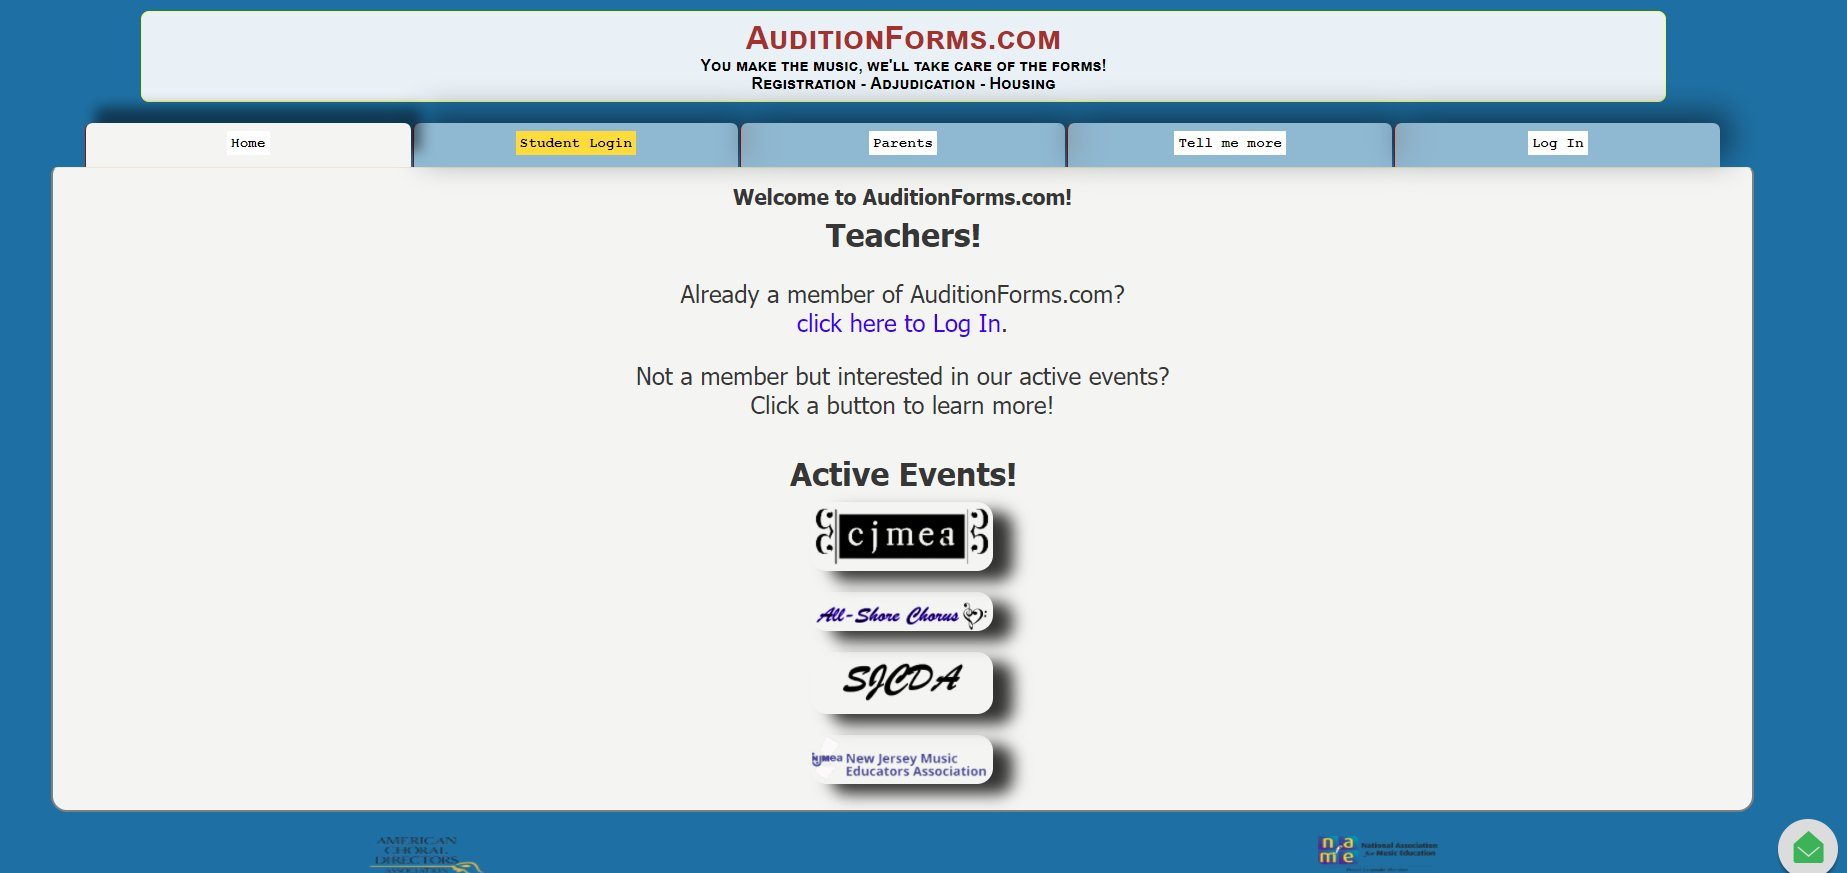 AuditionForms.com home page